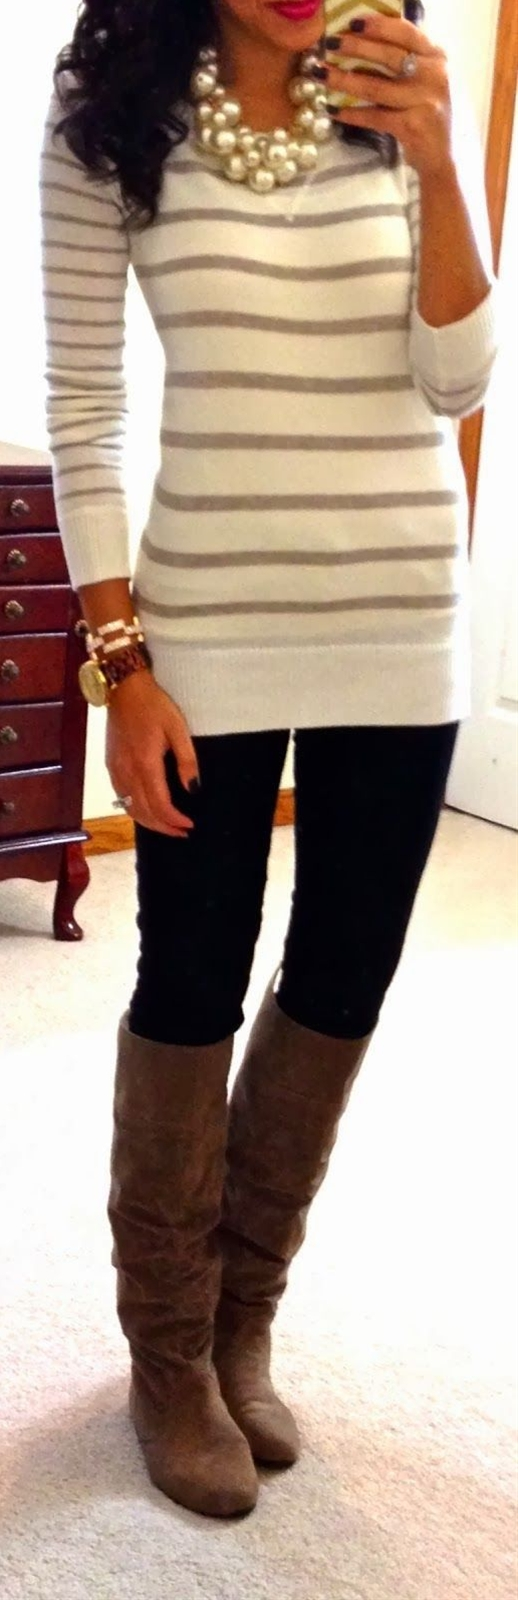 Striped sweater,  Dark-wash skinny jeans,  Pearl cluster necklace C/O T+J Designs,   Bracelet c/o Sira & Mara,  Alex Tortoise watch c/o Wristology Watches,  Taupe boots